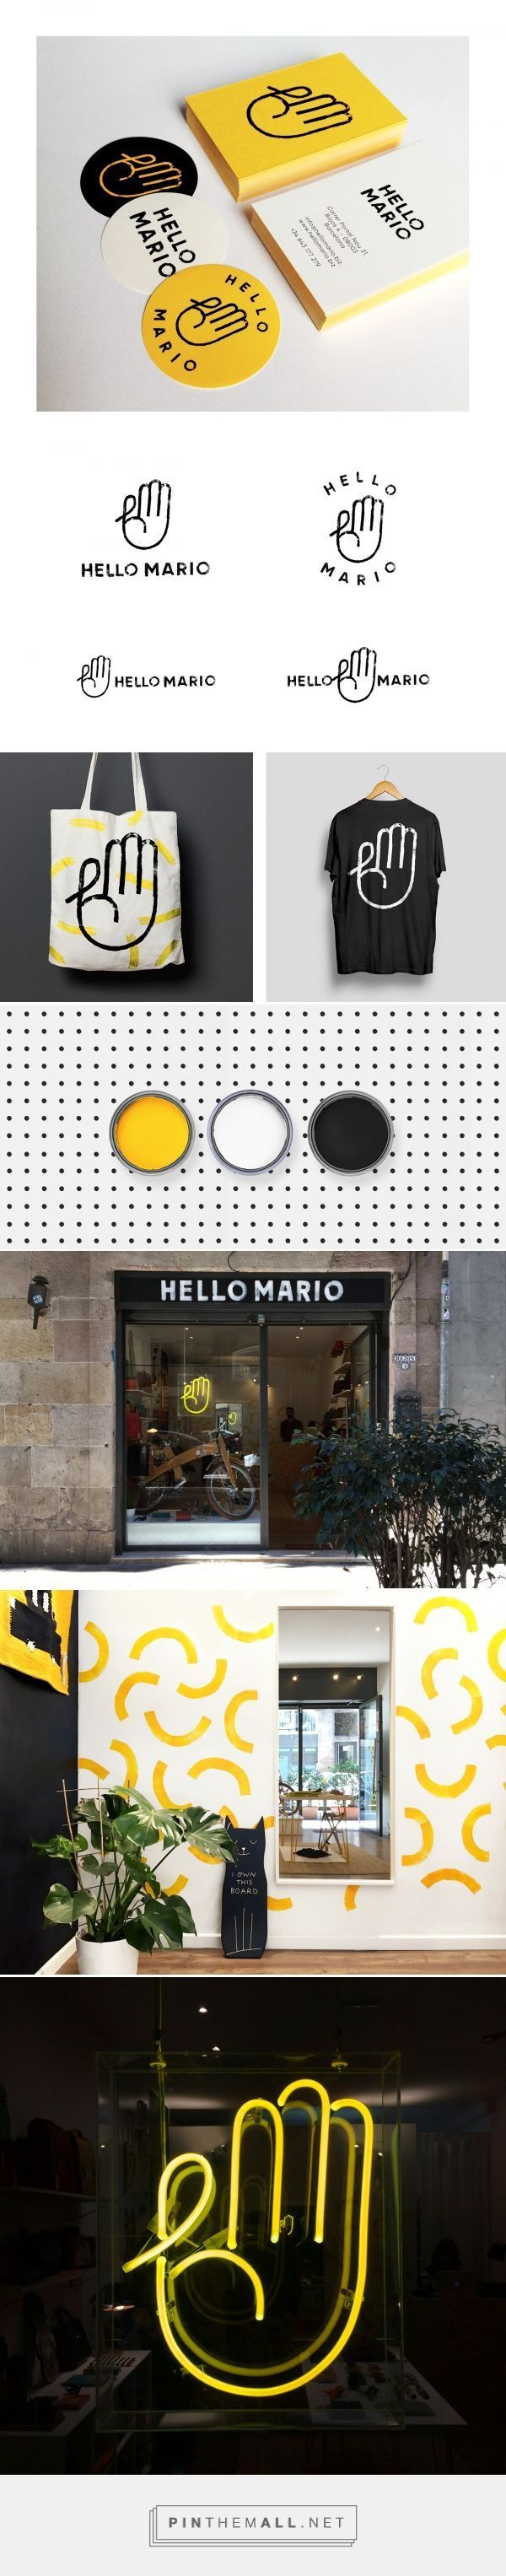 Hello Mario Branding by Min | Fivestar Branding Agency – Design and Branding Agency & Curated Inspiration Gallery